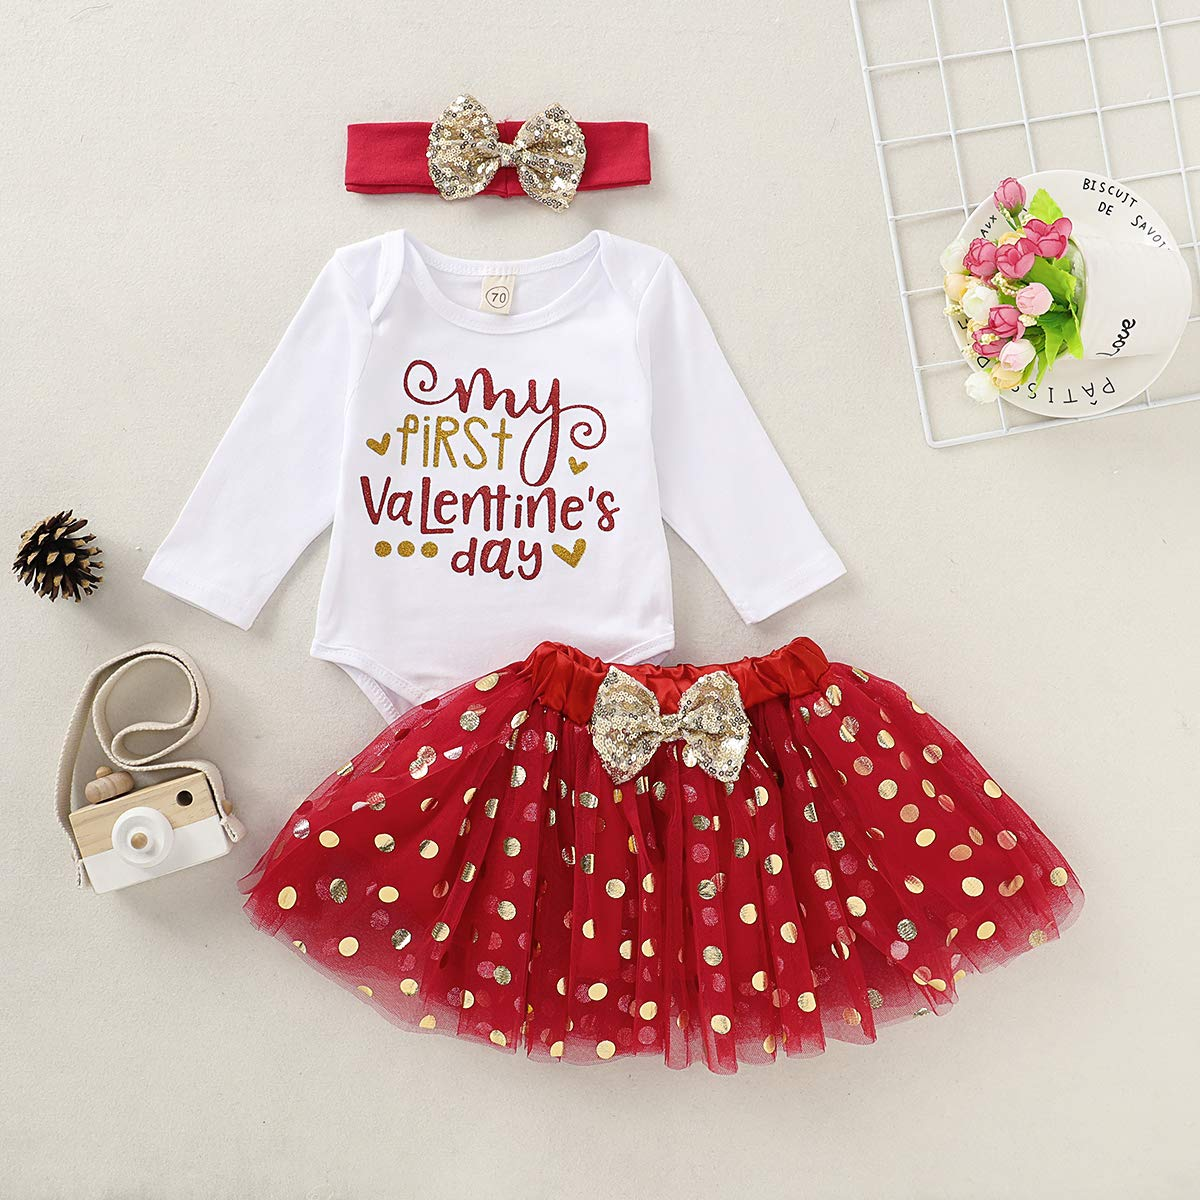 Red Tutu Skirt Set Bows Headband 3pcs Infant Set Newborn Baby Girl Clothes My First Valentines Day Outfits Romper